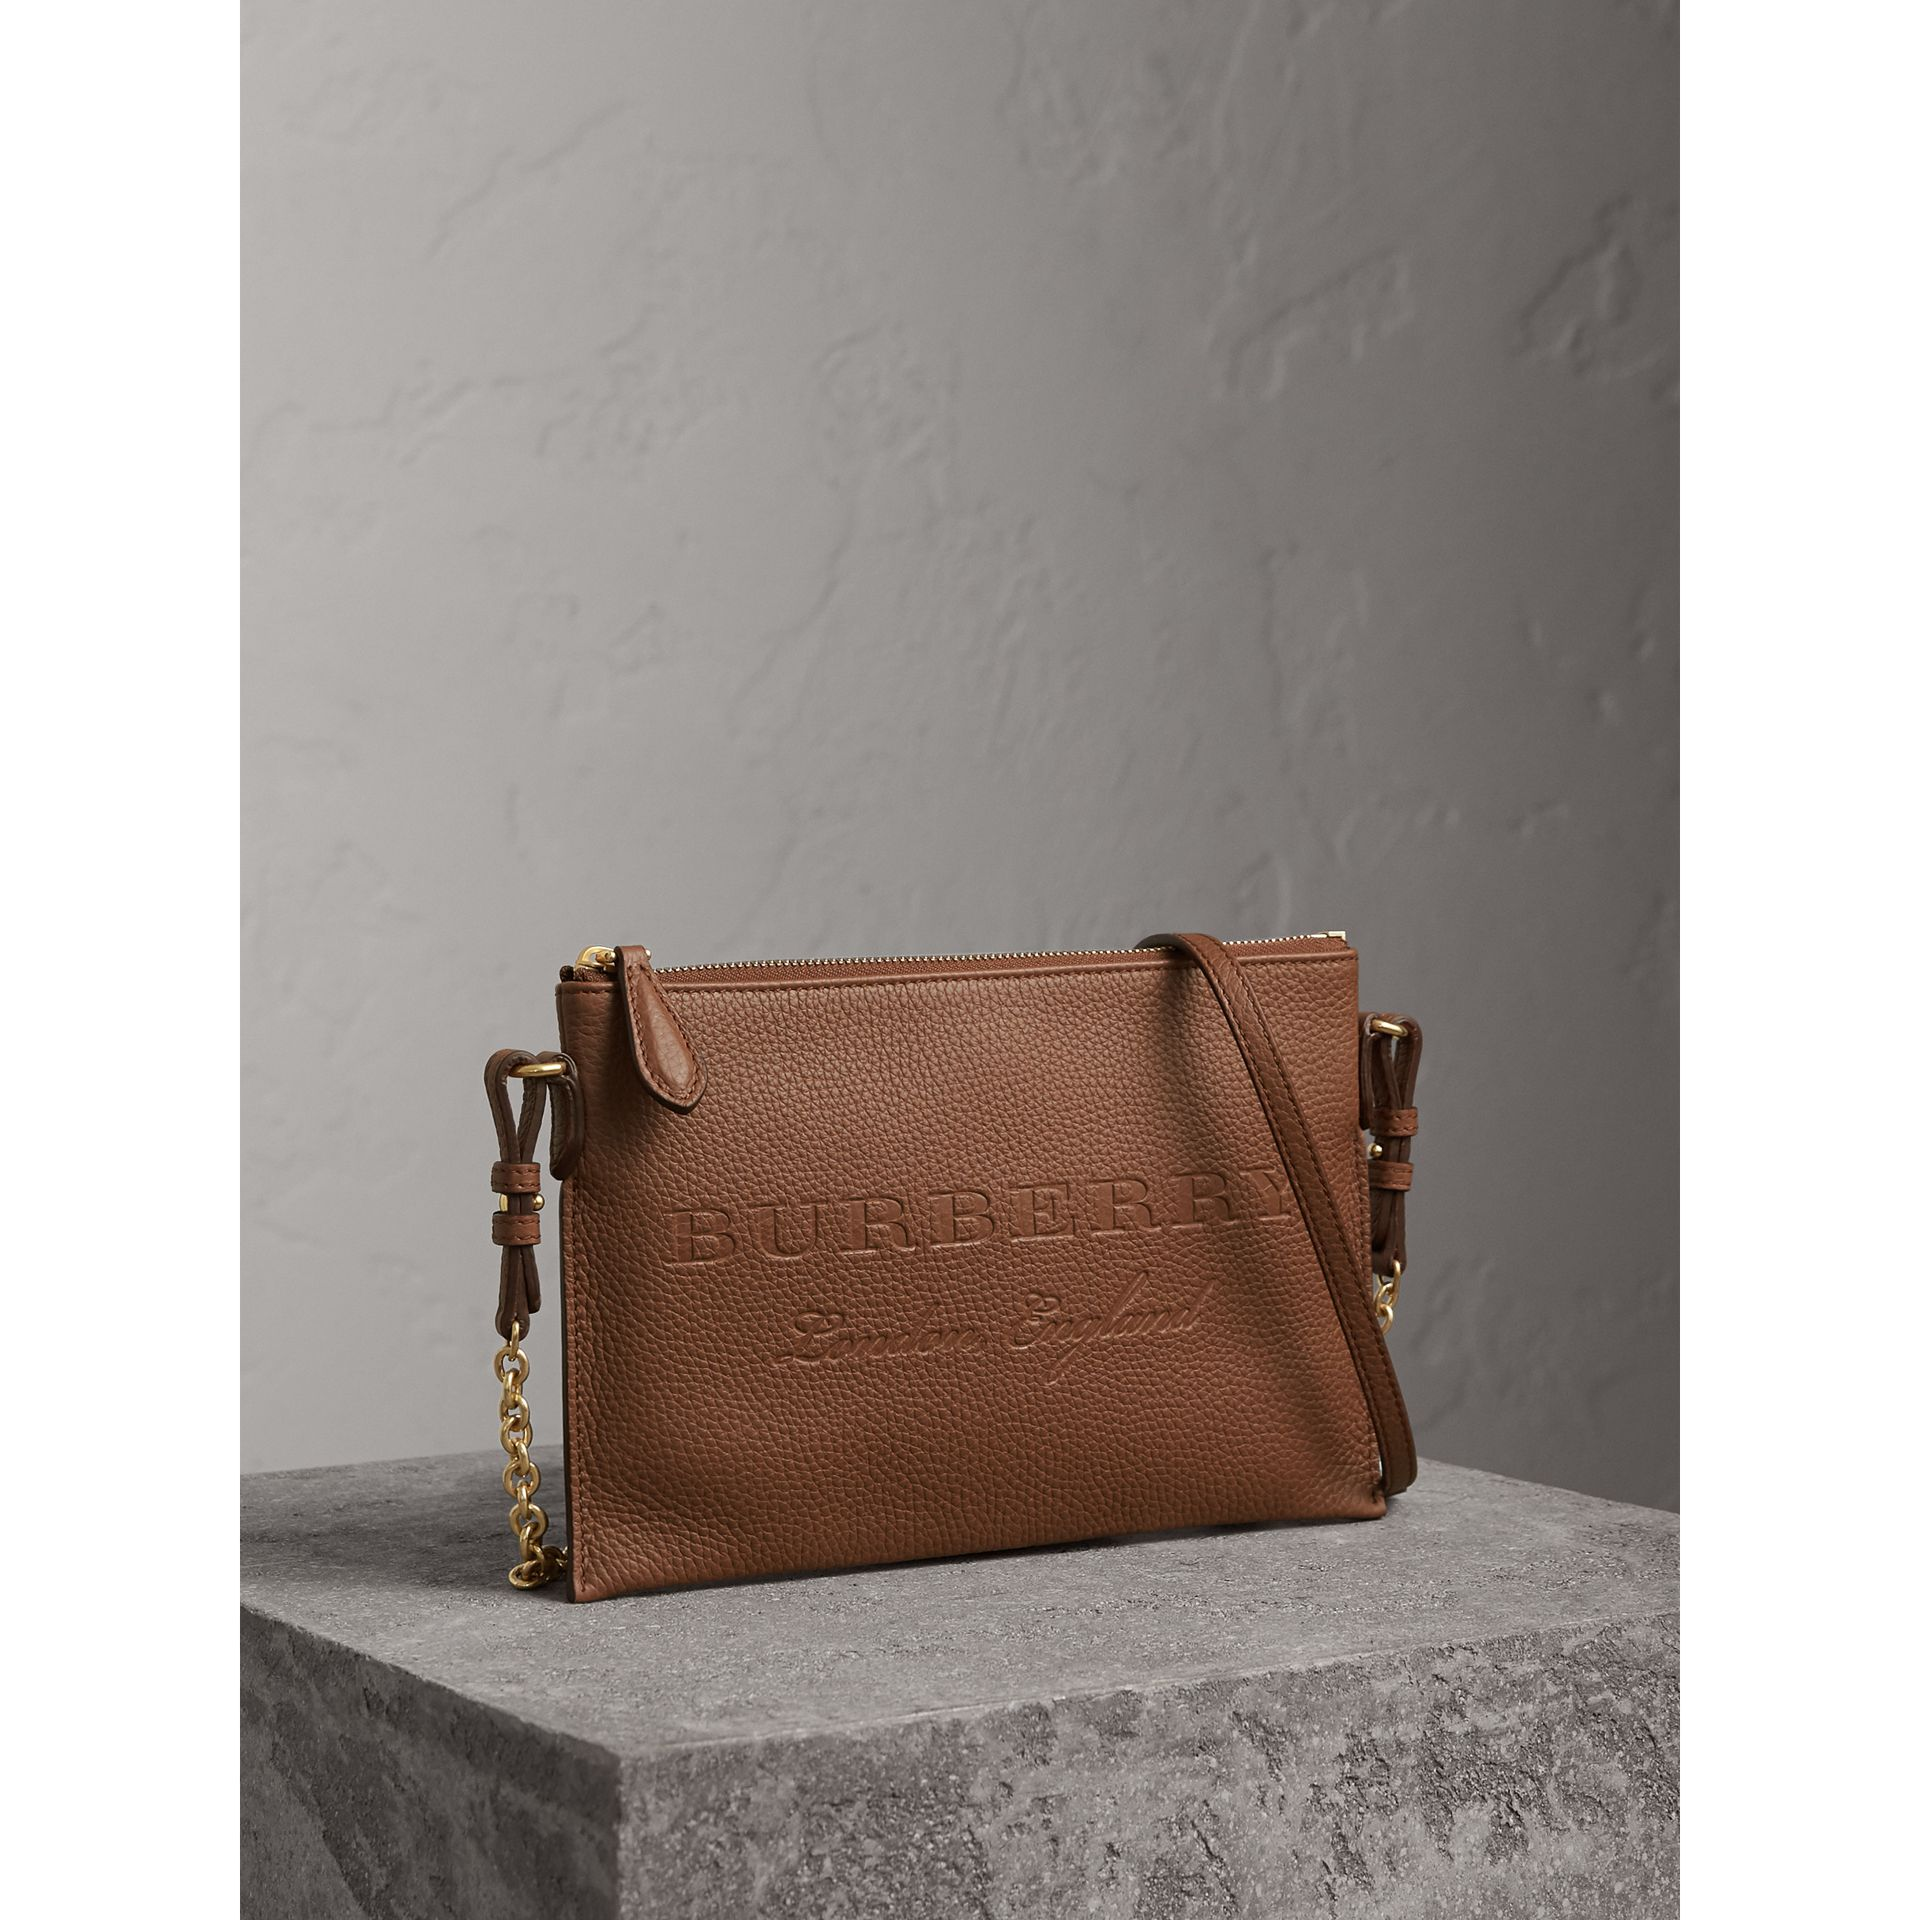 Embossed Leather Clutch Bag in Chestnut Brown - Women | Burberry Canada - gallery image 6